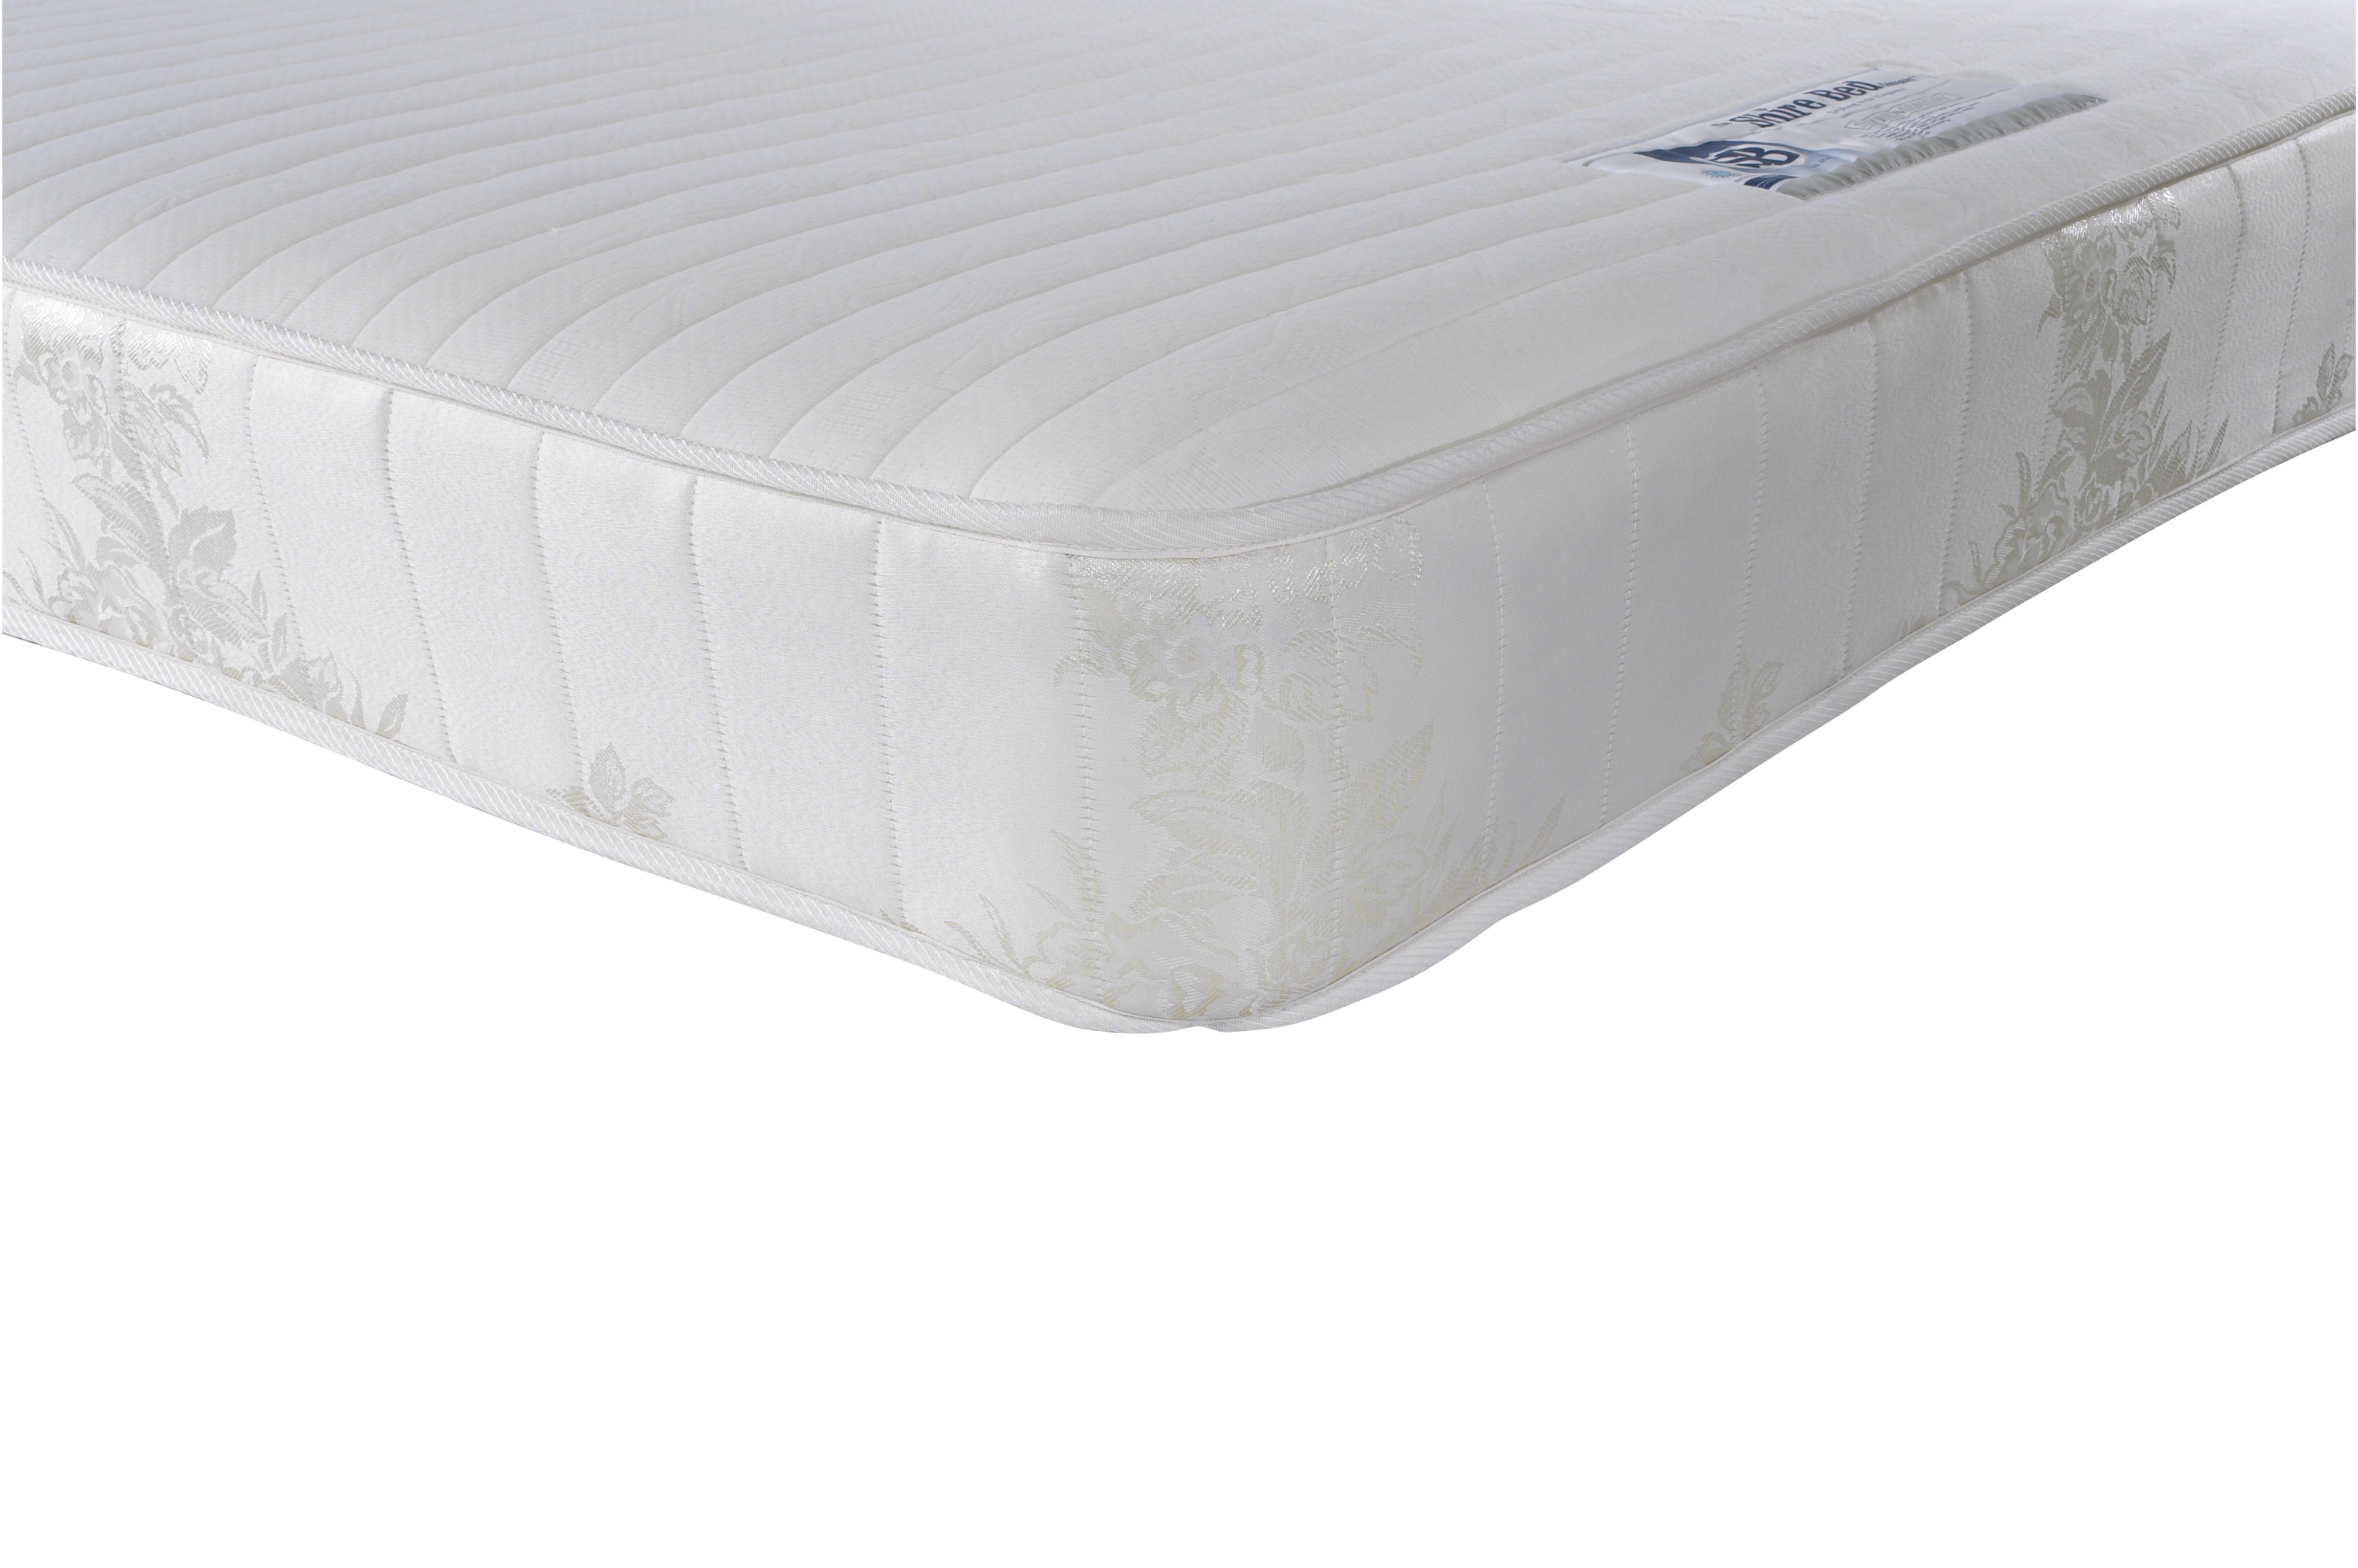 Shire Crown 15 Memory Foam Mattress from £139